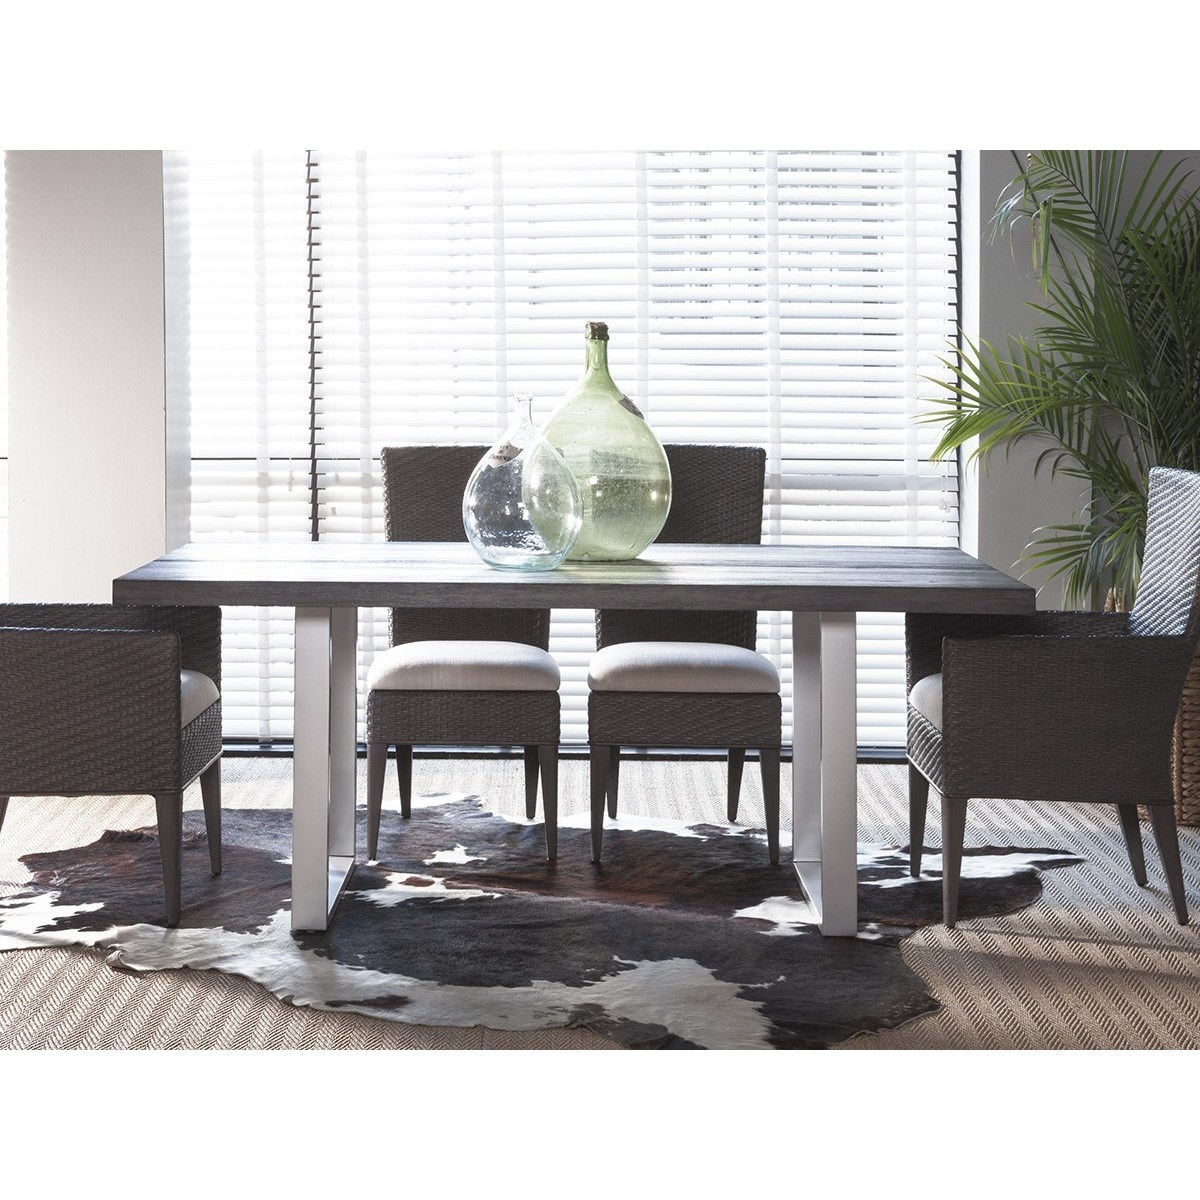 Dazzelton Dining Room Table: Artistica Cadence 2090-876 Contemporary Rectangular Dining